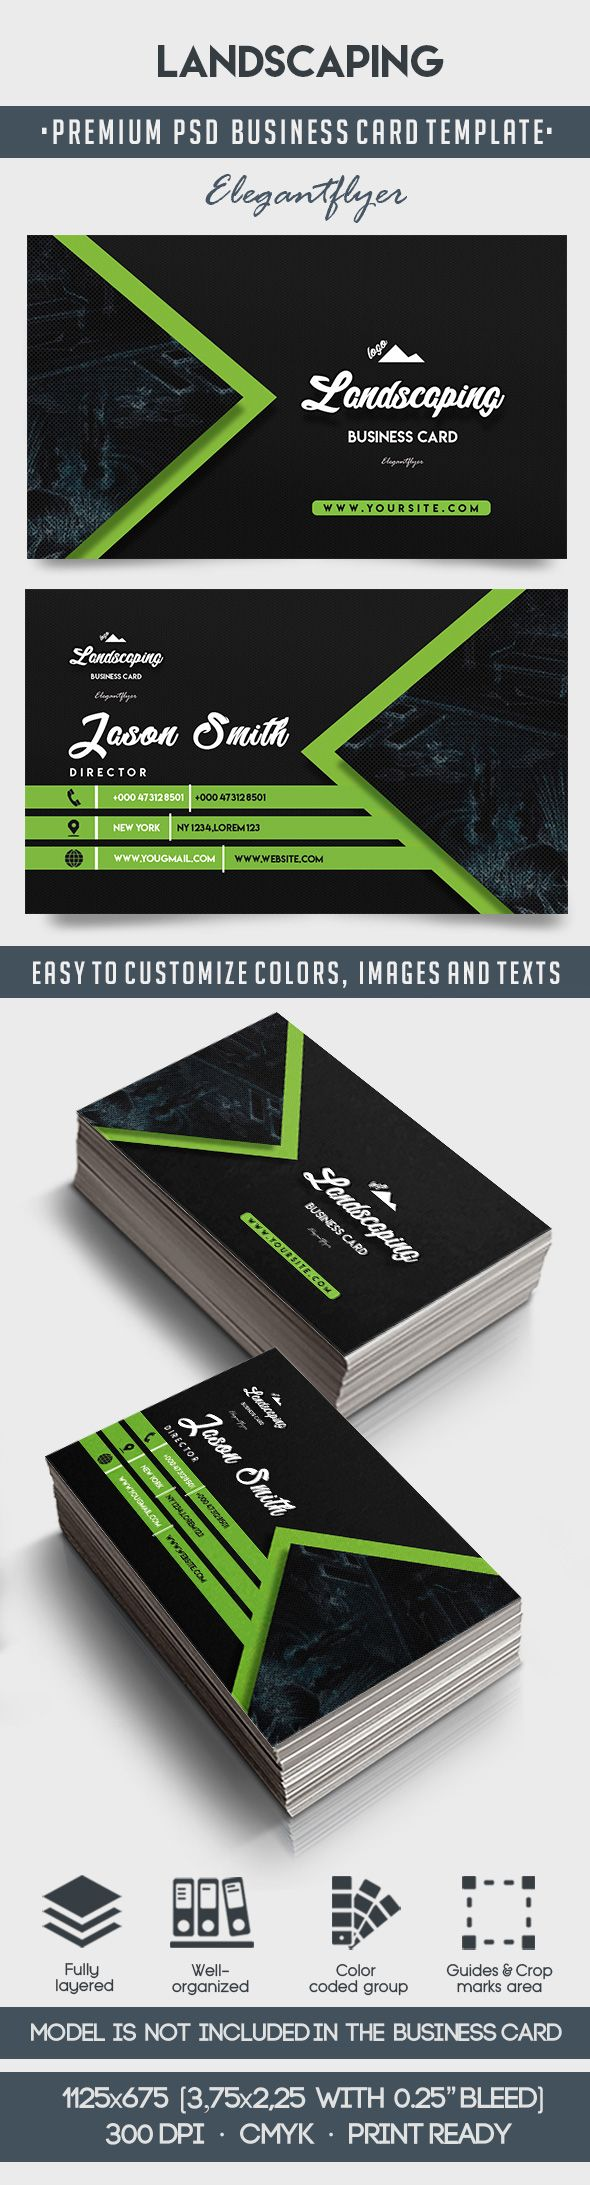 Landscaping business card templates psd by elegantflyer landscaping business card templates psd accmission Images